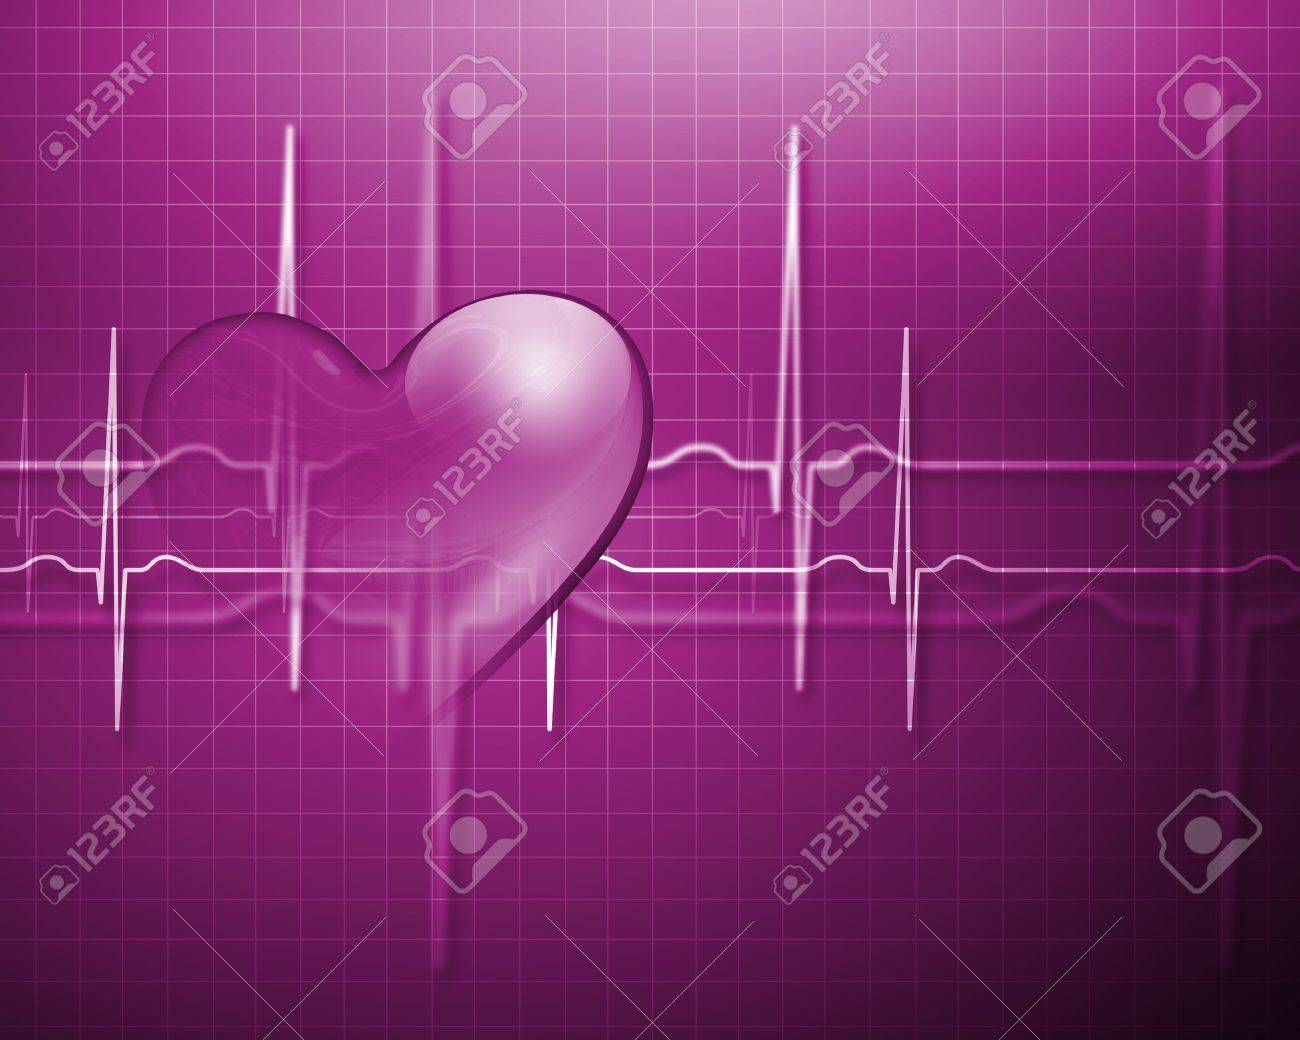 Image of heart beat picture on a colour background Stock Photo - 15220966